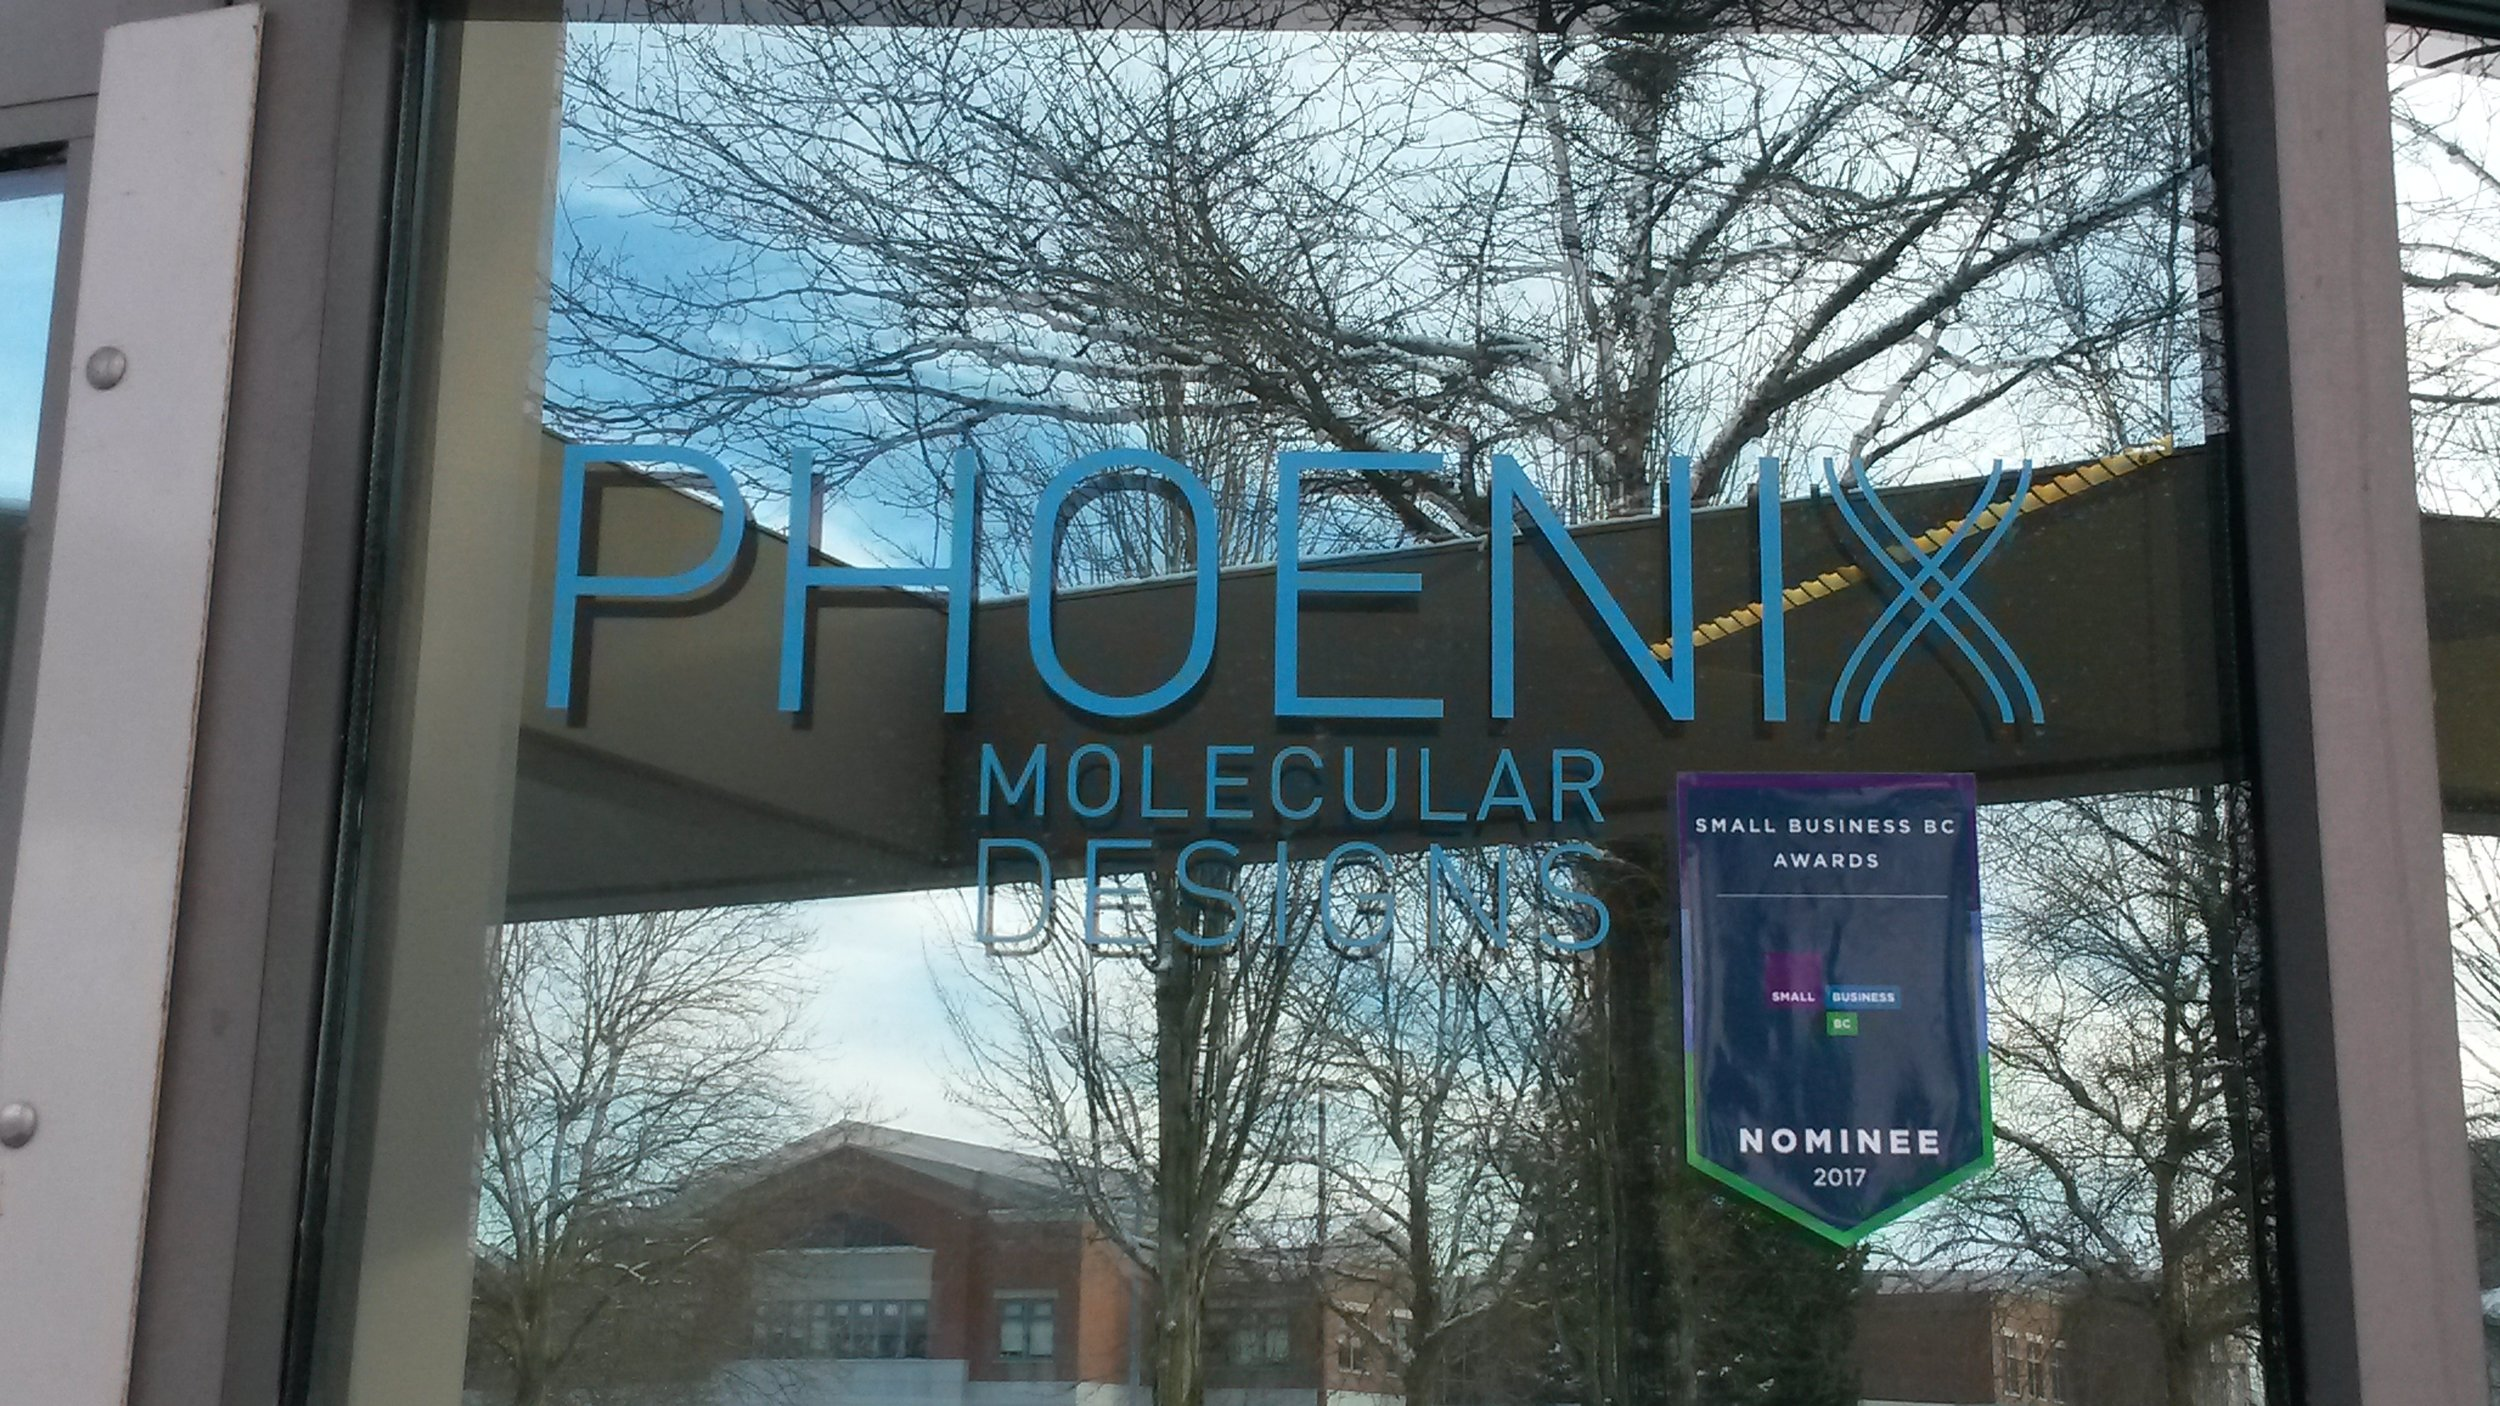 New Window decal outside phoenix Molecular designs at the richmond LABORATORIES #SBBCAWARDS